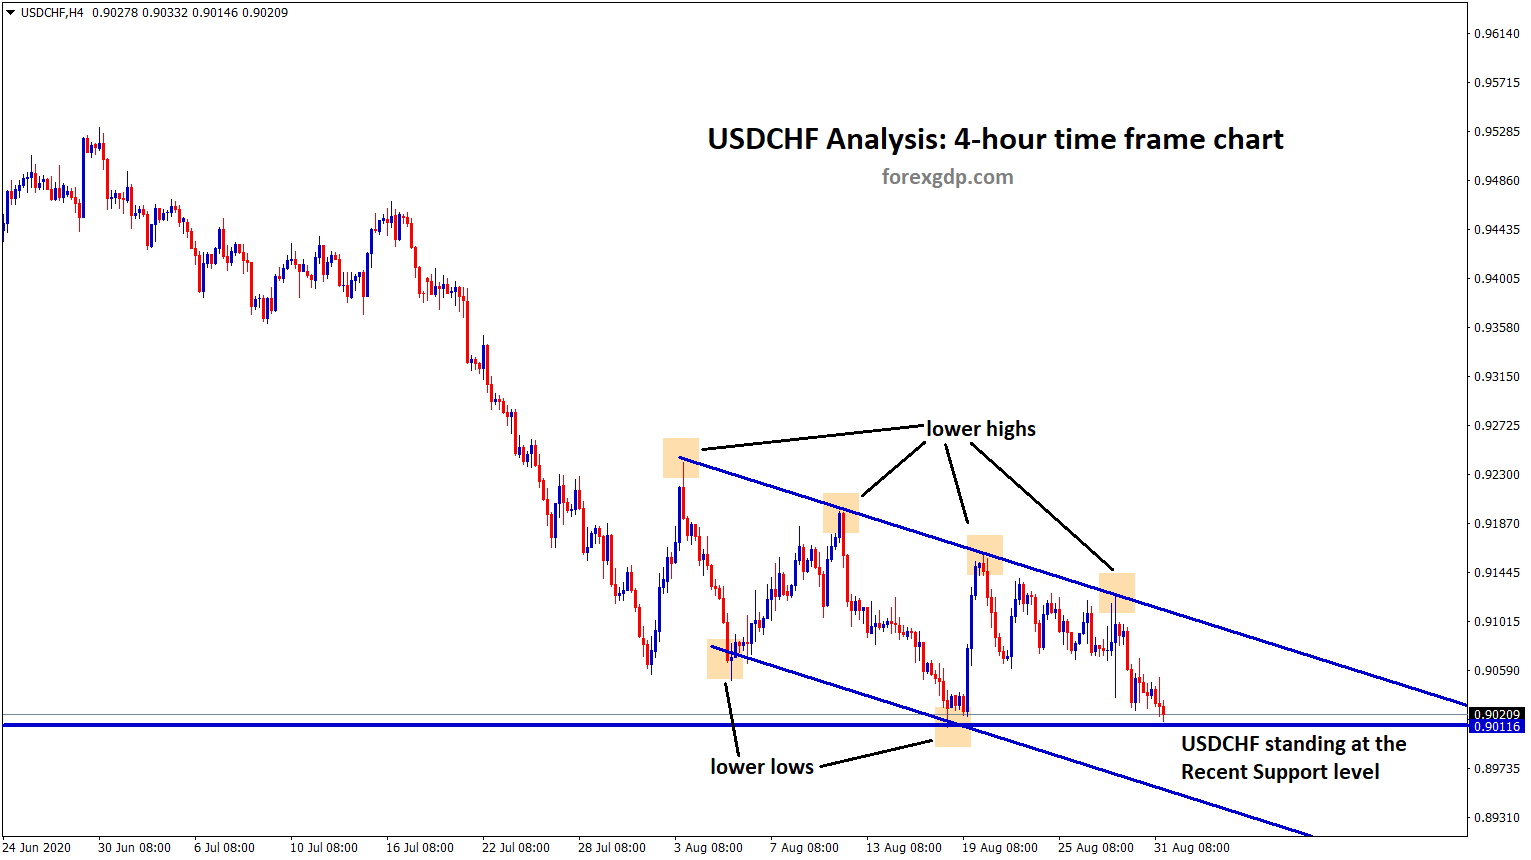 USDCHF standing at the recent support by moving in descending channel